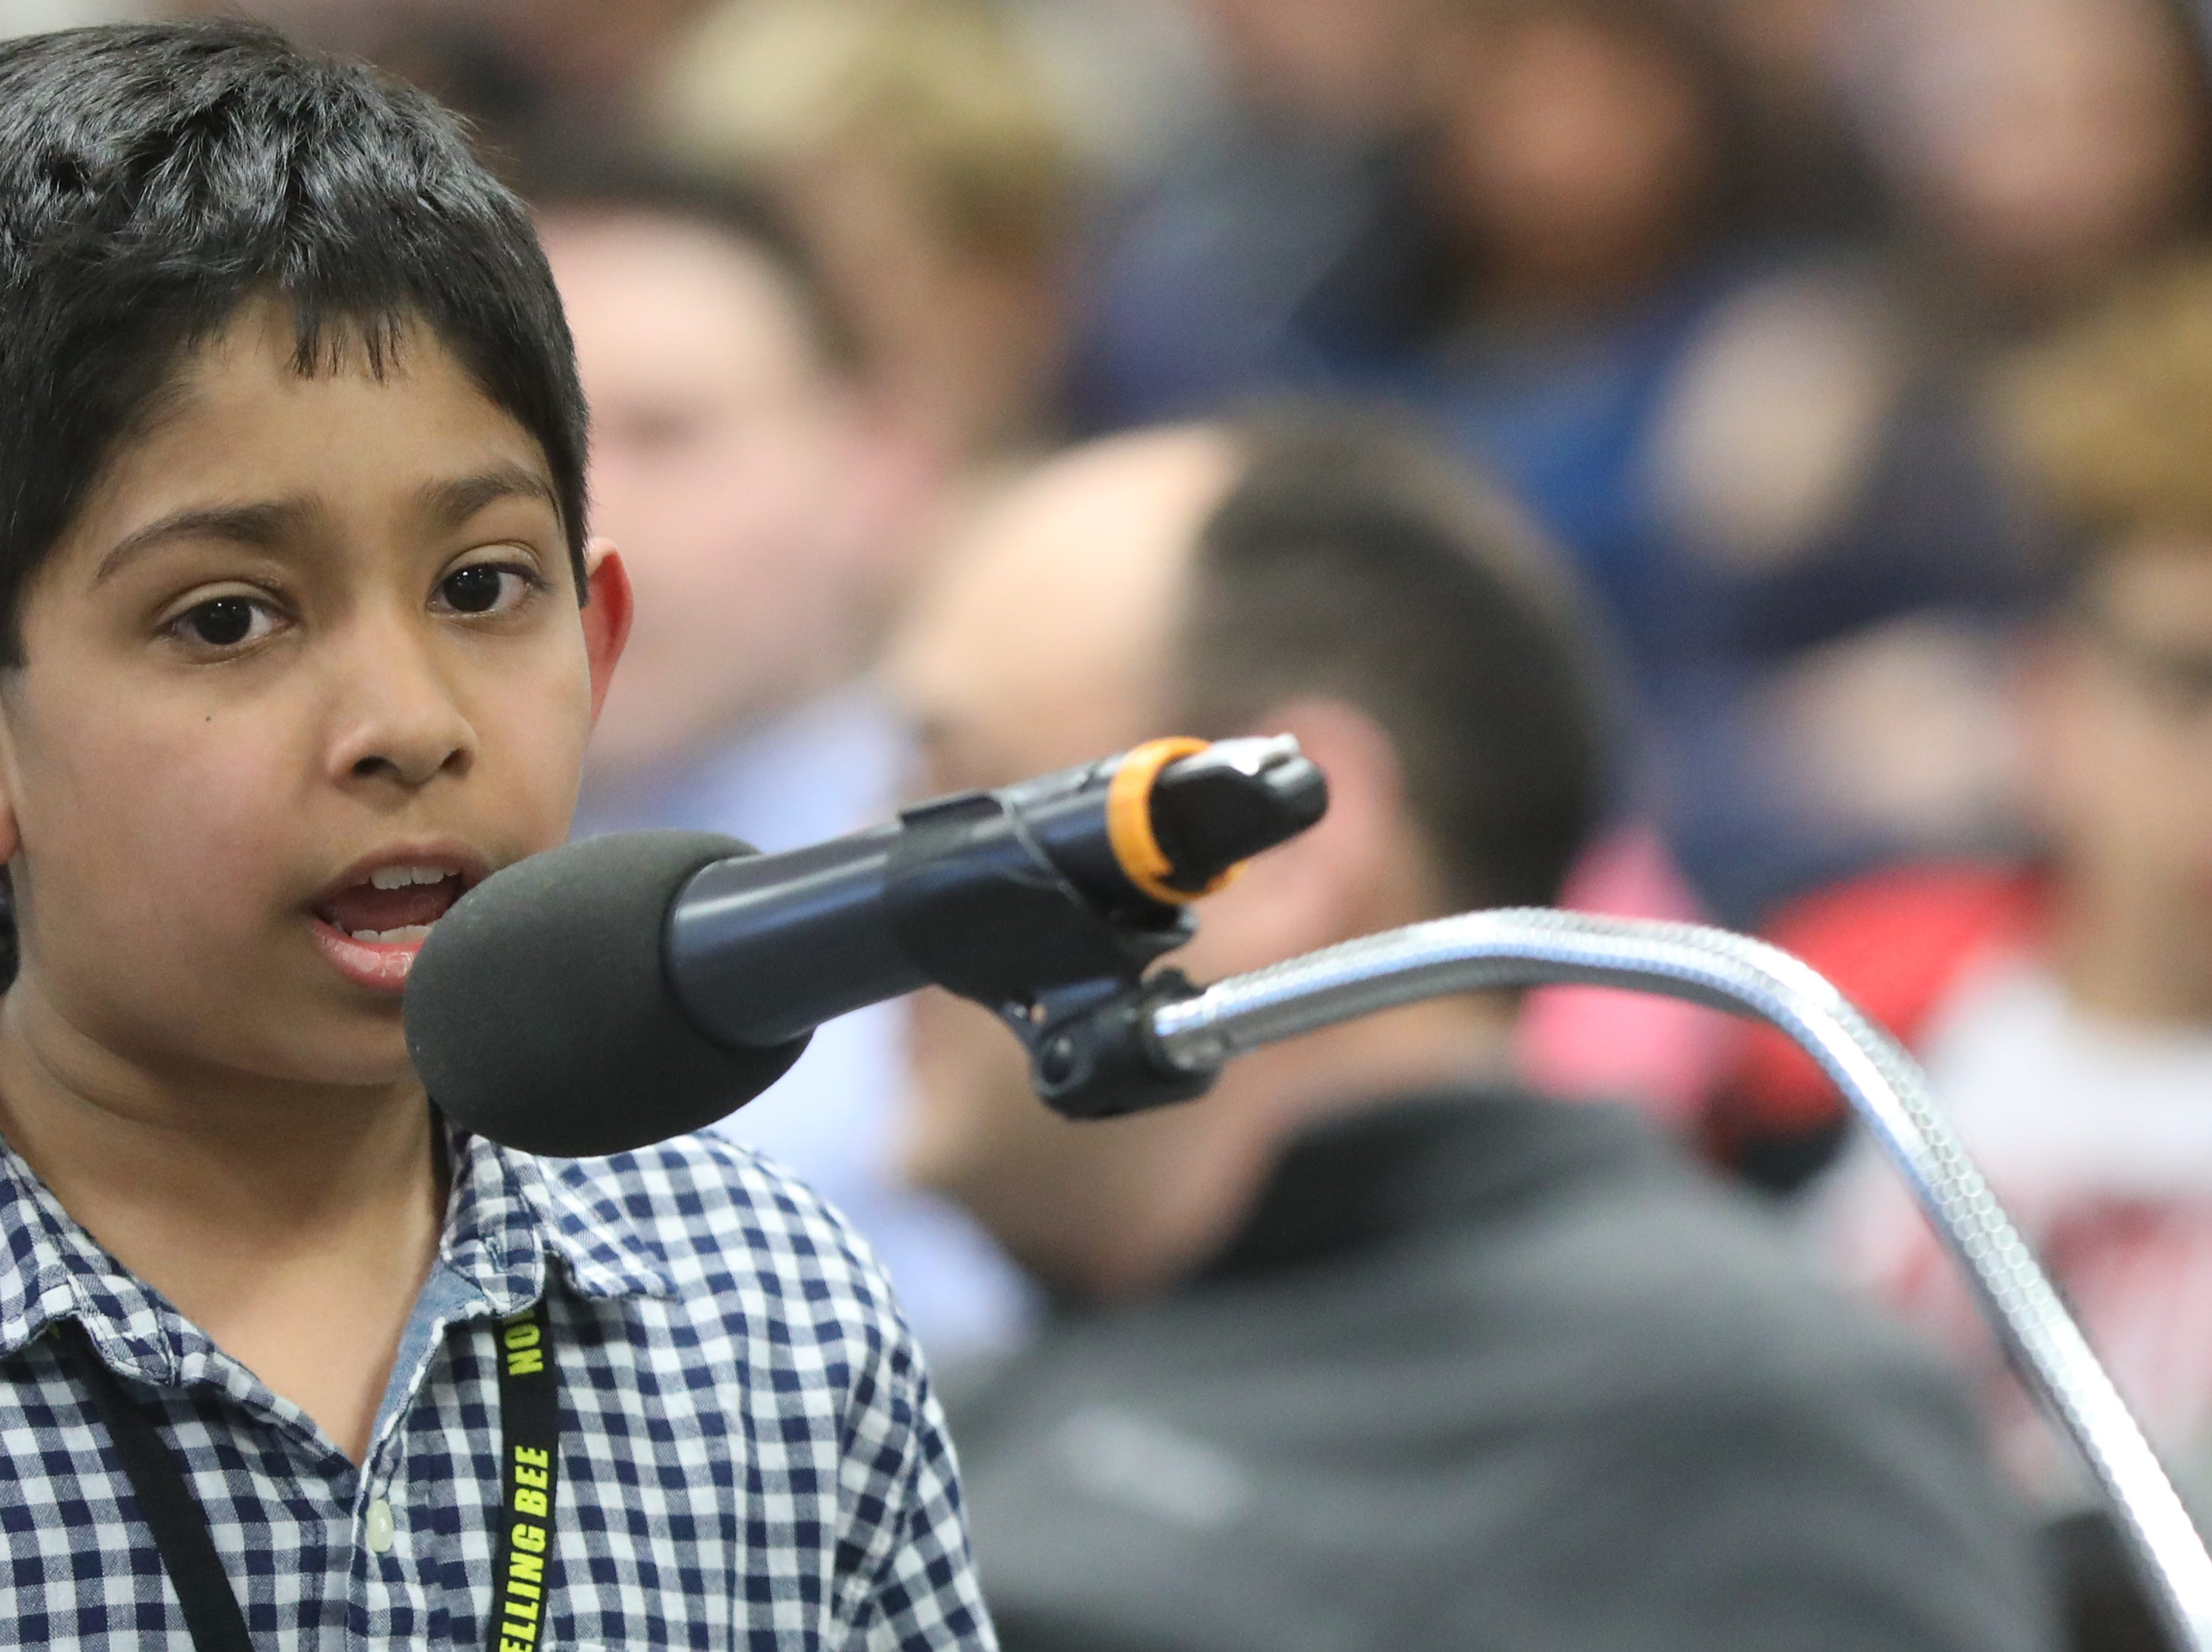 Mohammed Zariwala, of Ridgewood, competes in the first round of the 2019 North Jersey Spelling Bee, in Paramus. Thursday, March 14, 2019